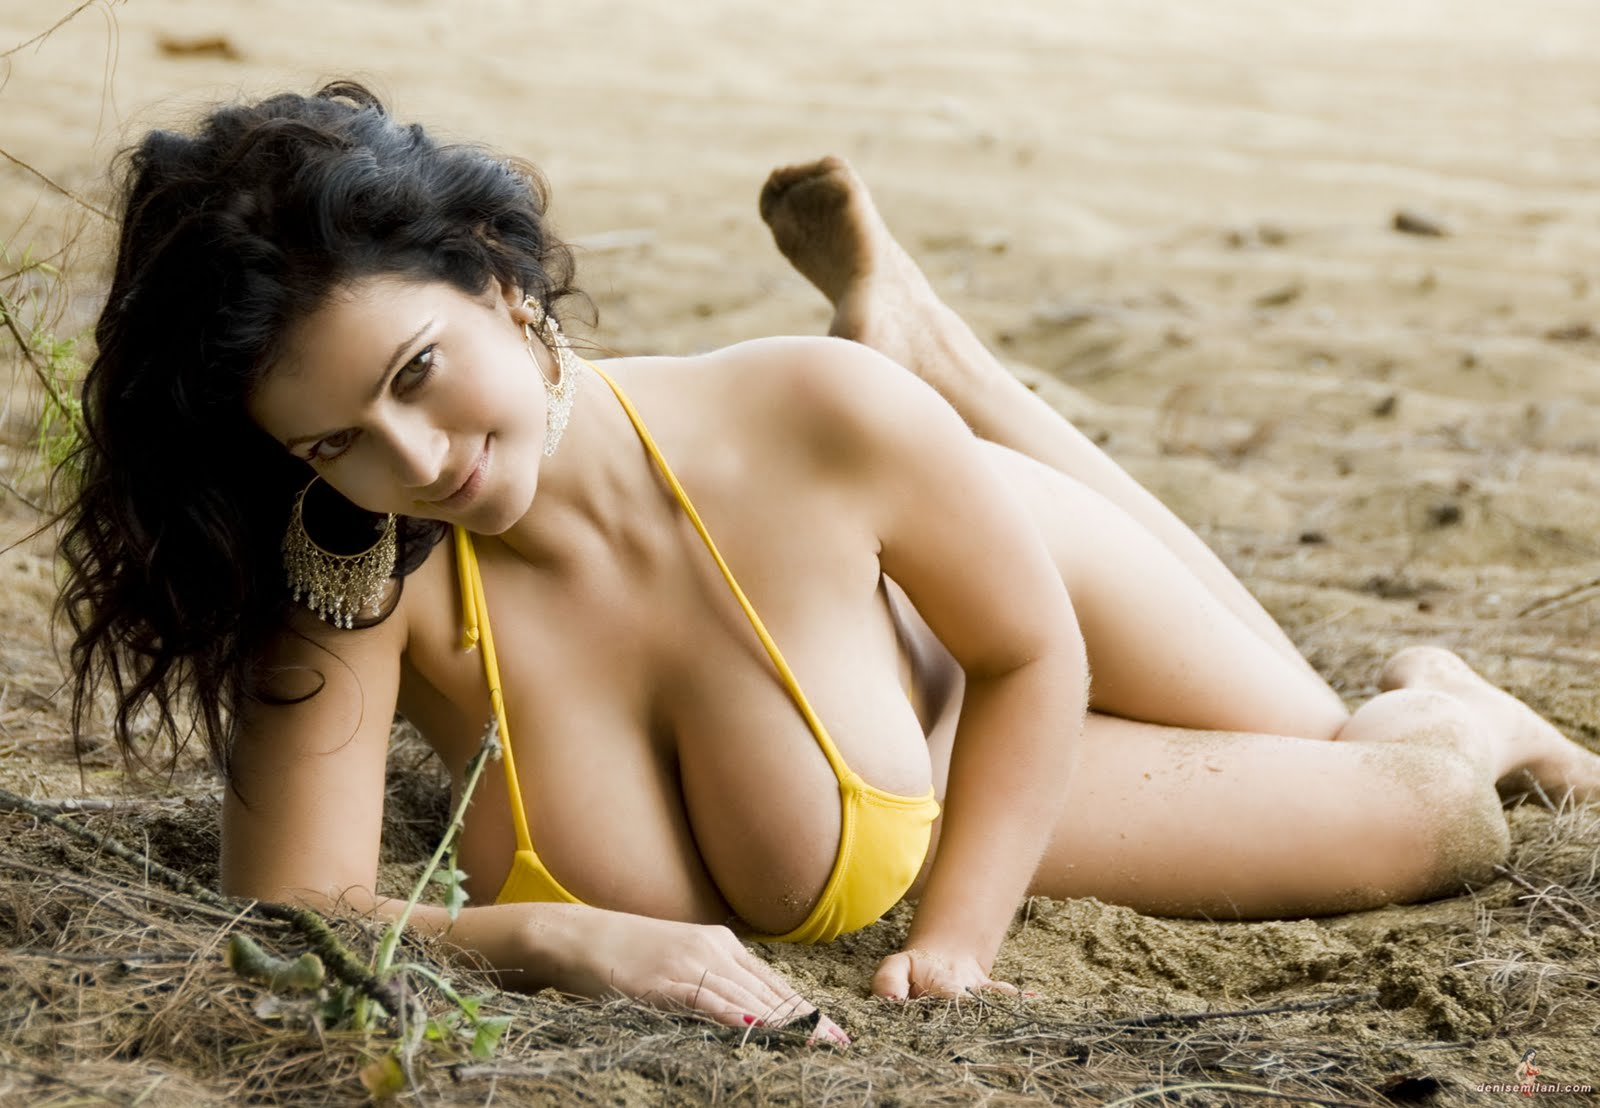 http://1.bp.blogspot.com/-sQwmukseFjE/Tc2AAfEQULI/AAAAAAAAAHA/G4P0wW3gtfU/s1600/denise-milani-yellowbikini-2-hot-girls-wallpapers-hot-chicks-nude-girls-nacked-gilrs-hot-boobs-hot-pussy6.JPG